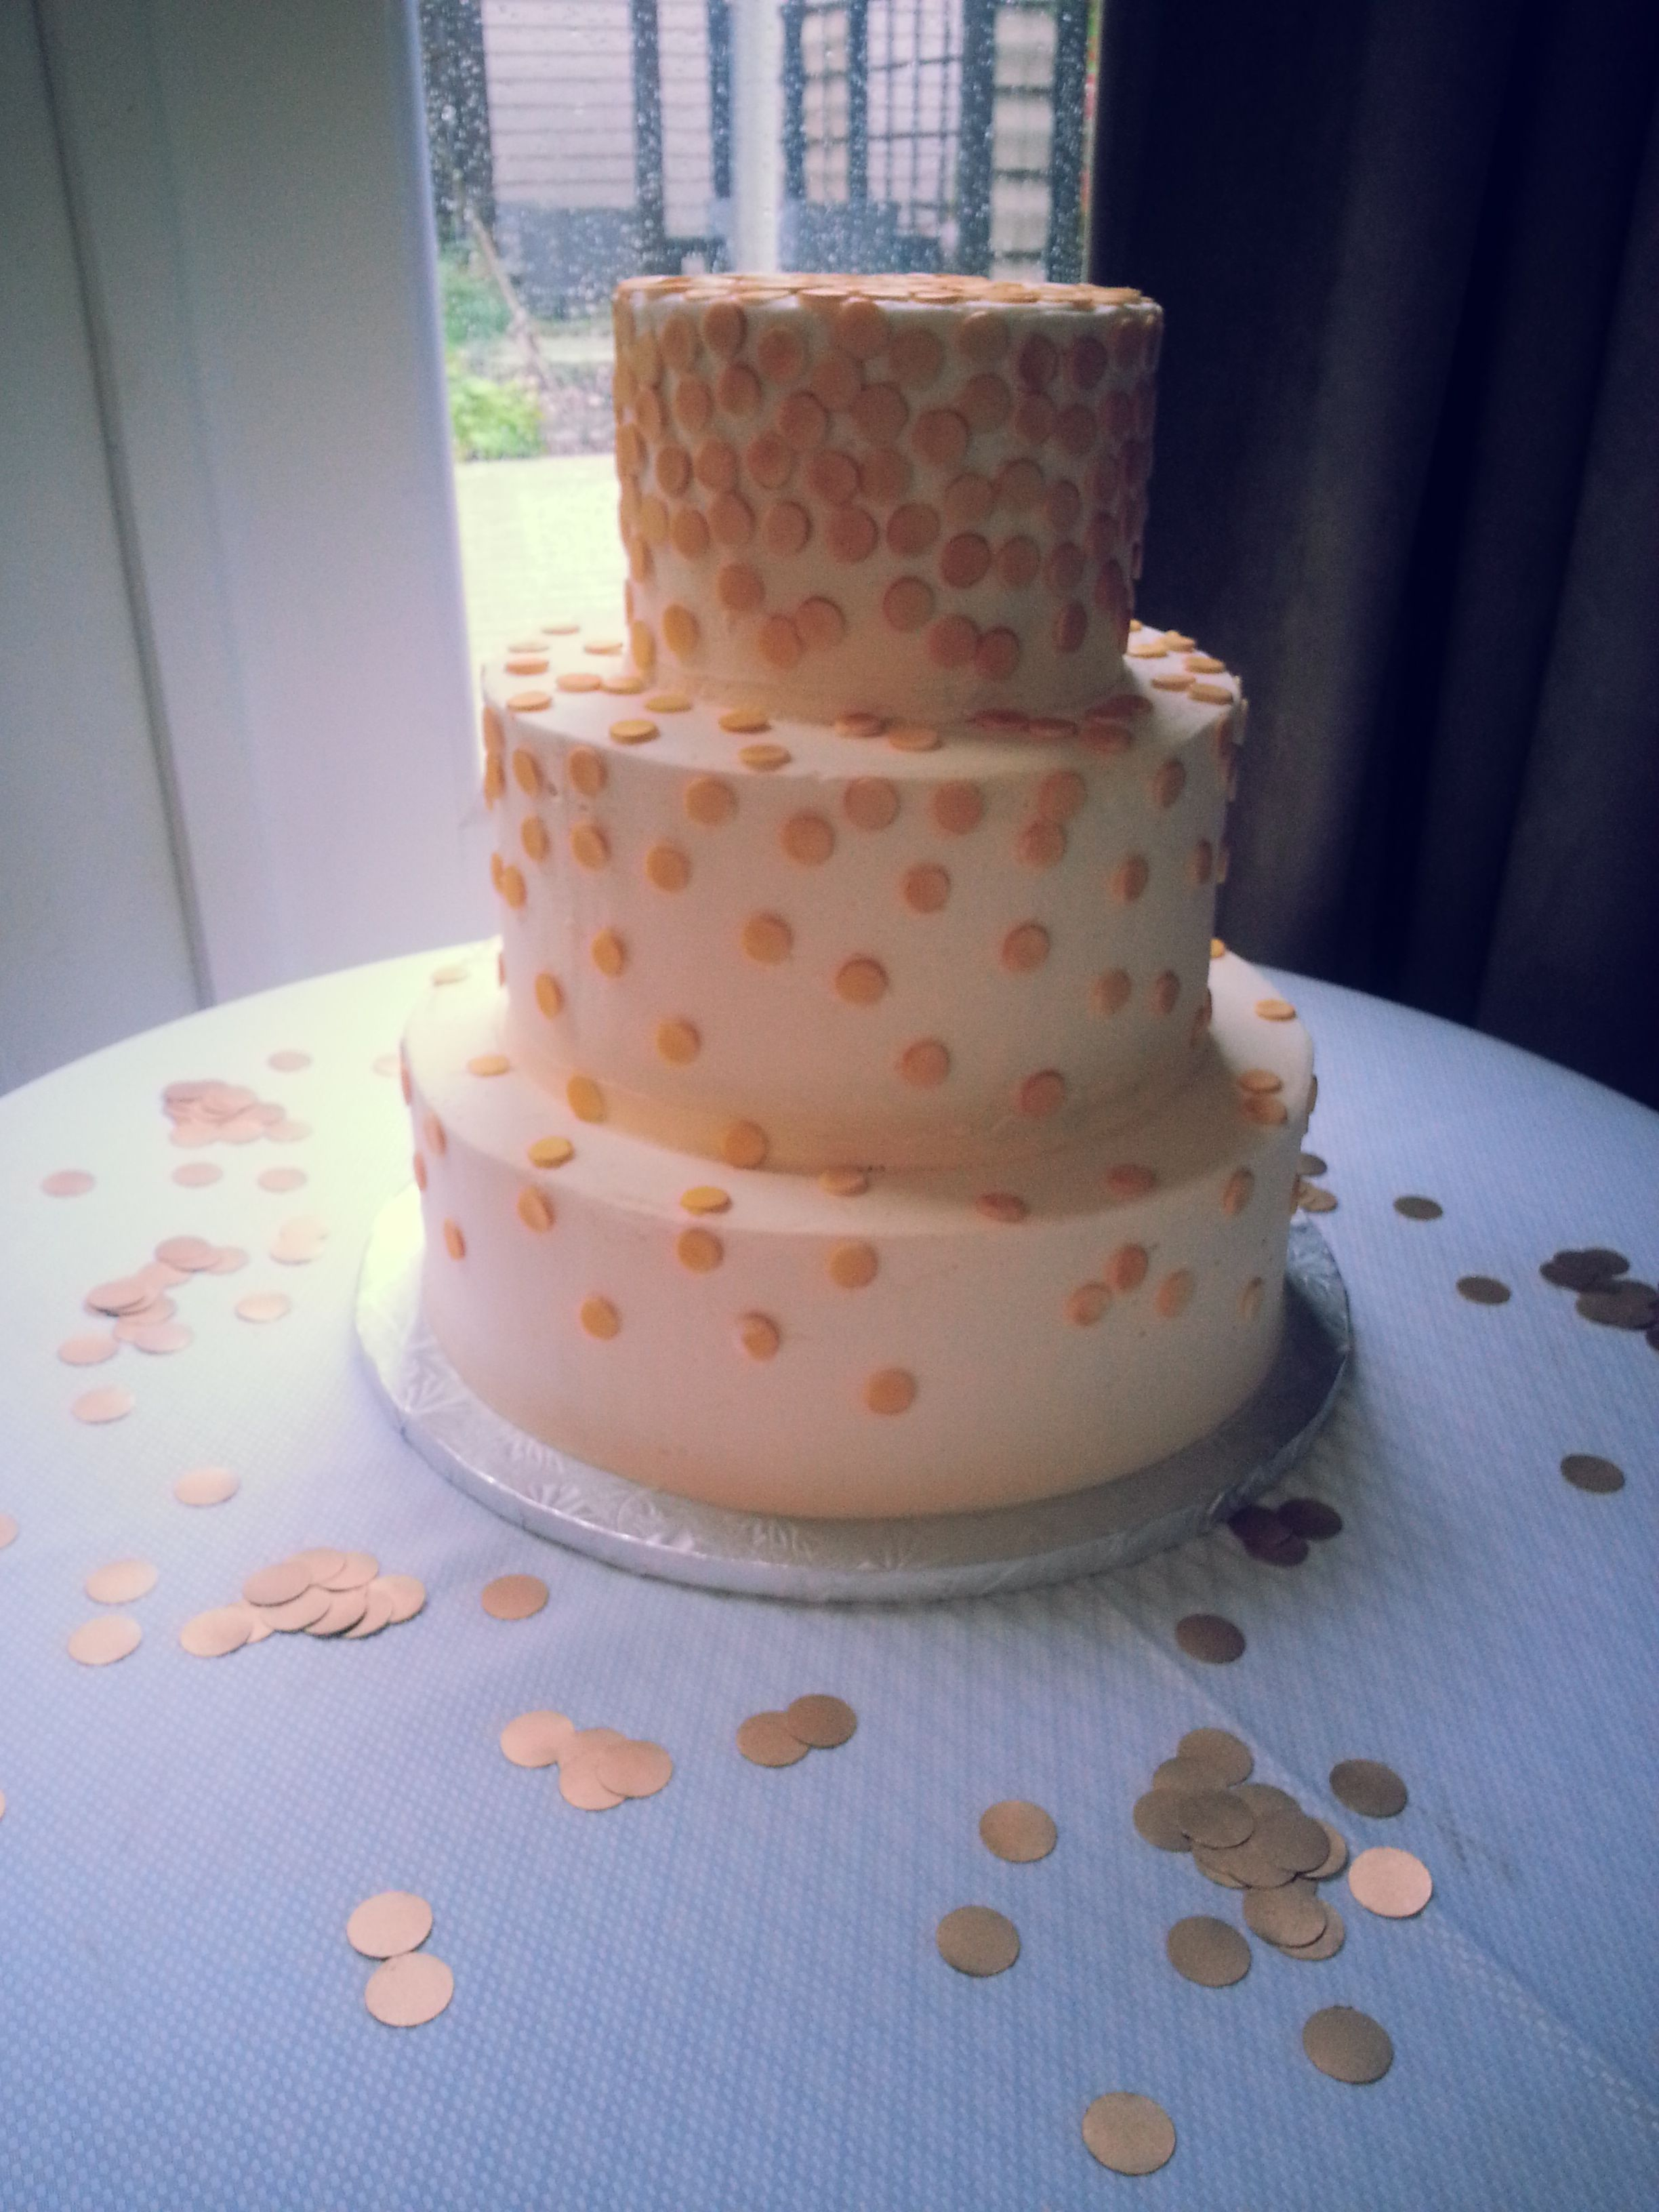 Gold confetti is raining down on this charming wedding cake